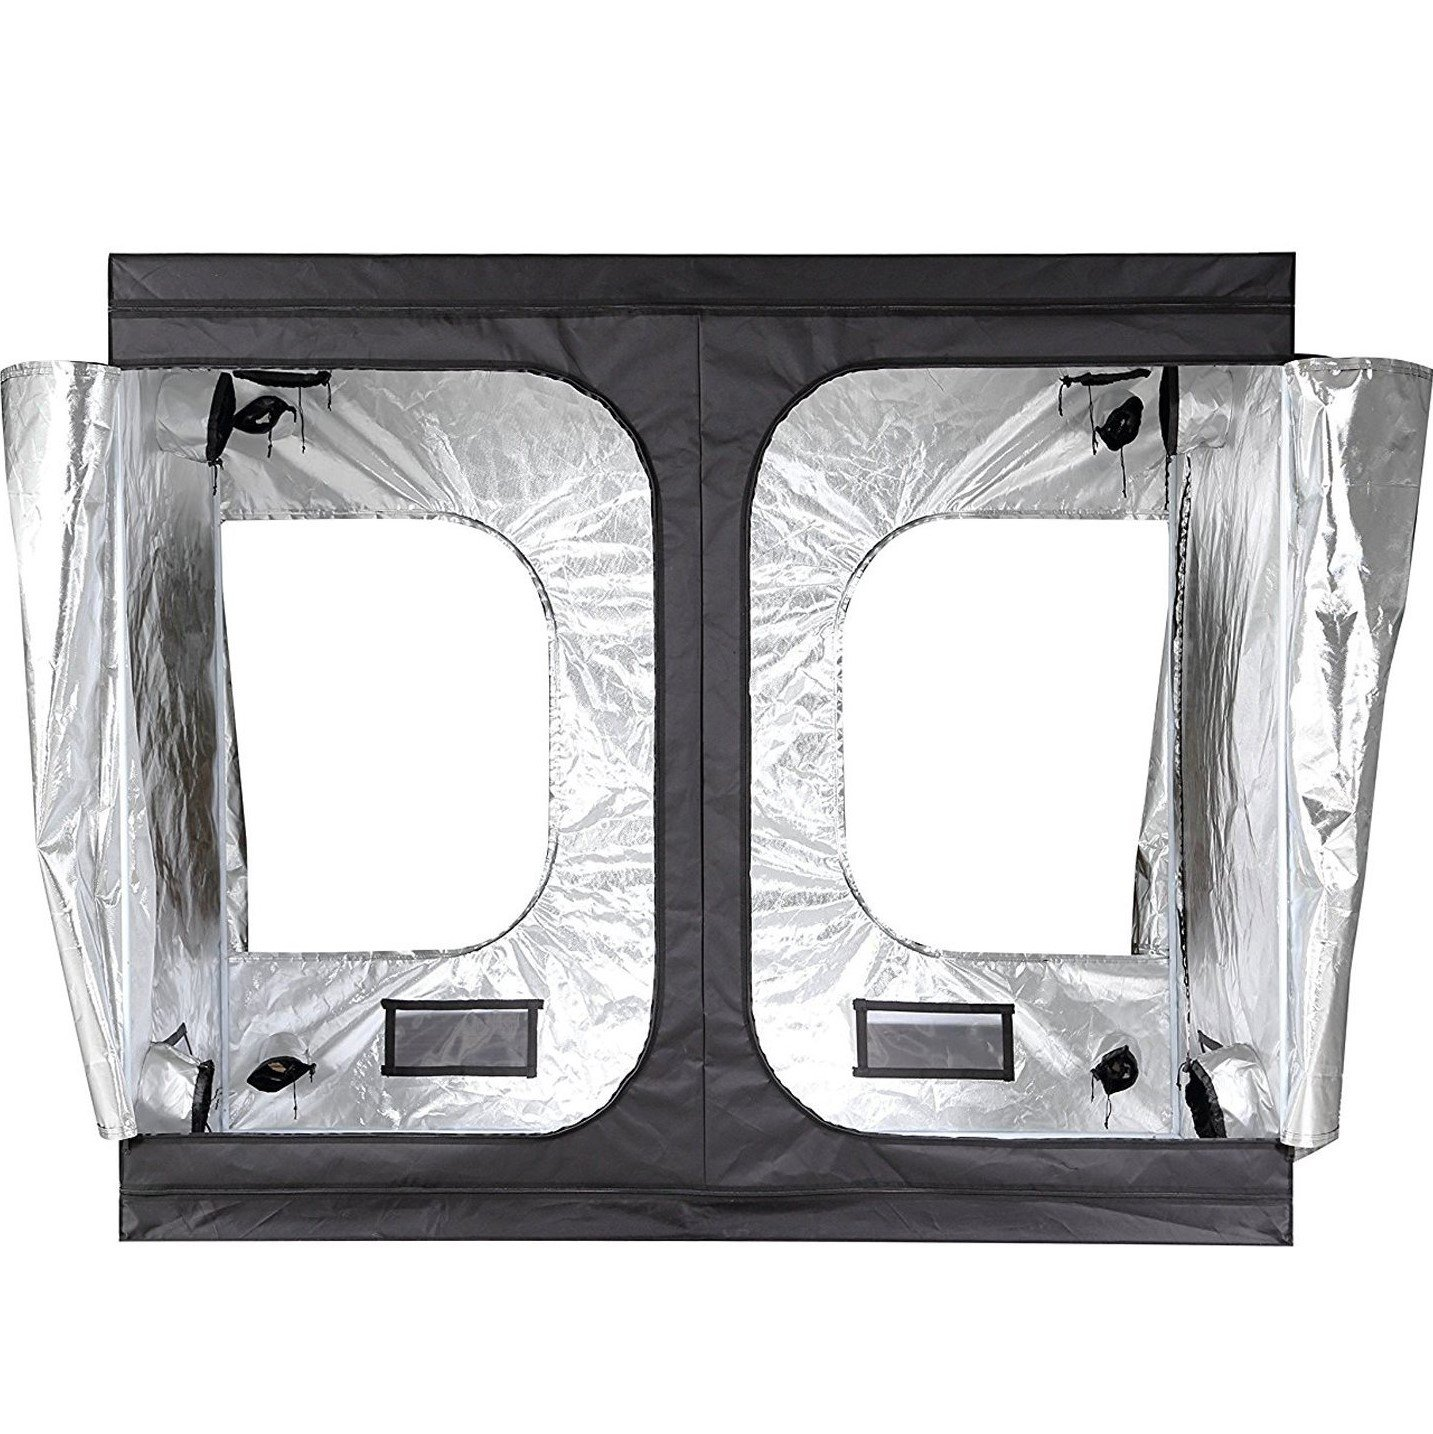 iPower 96 x48 x78  Hydroponic Water-Resistant Grow Tent with Removable Floor  sc 1 st  Amazon.com & Plant Growing Tents | Amazon.com